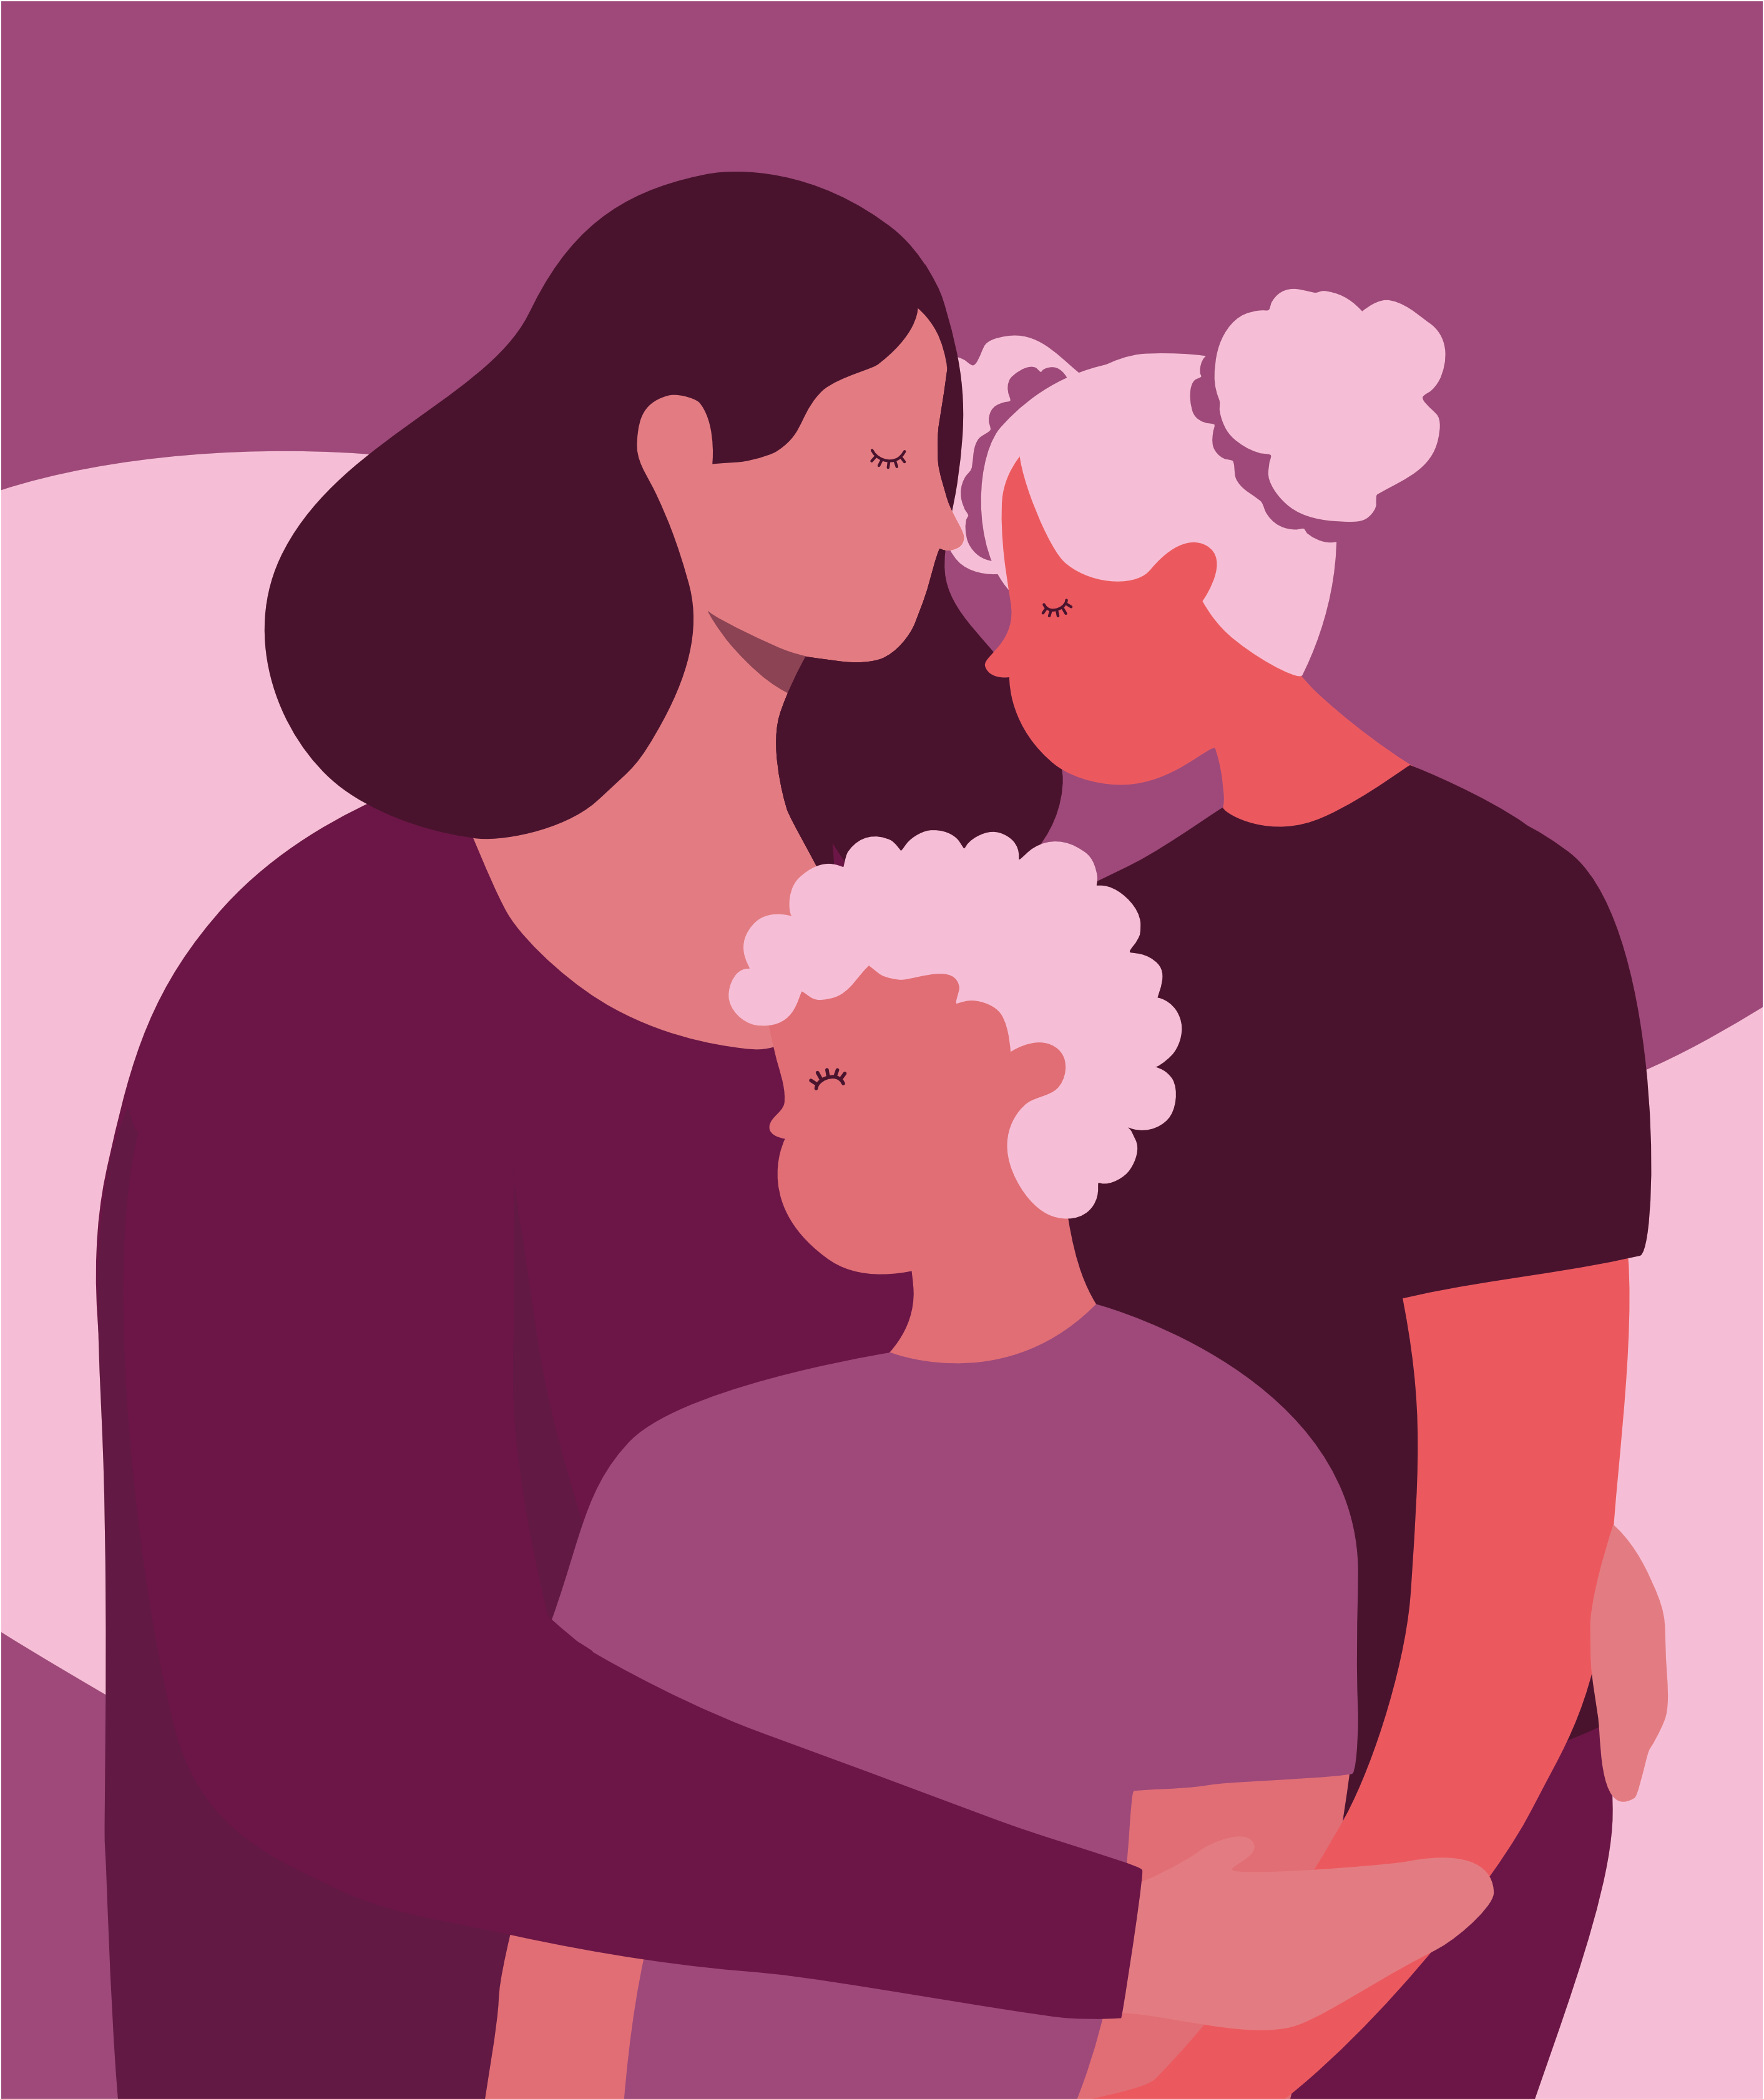 Illustration of a woman hugging her two children